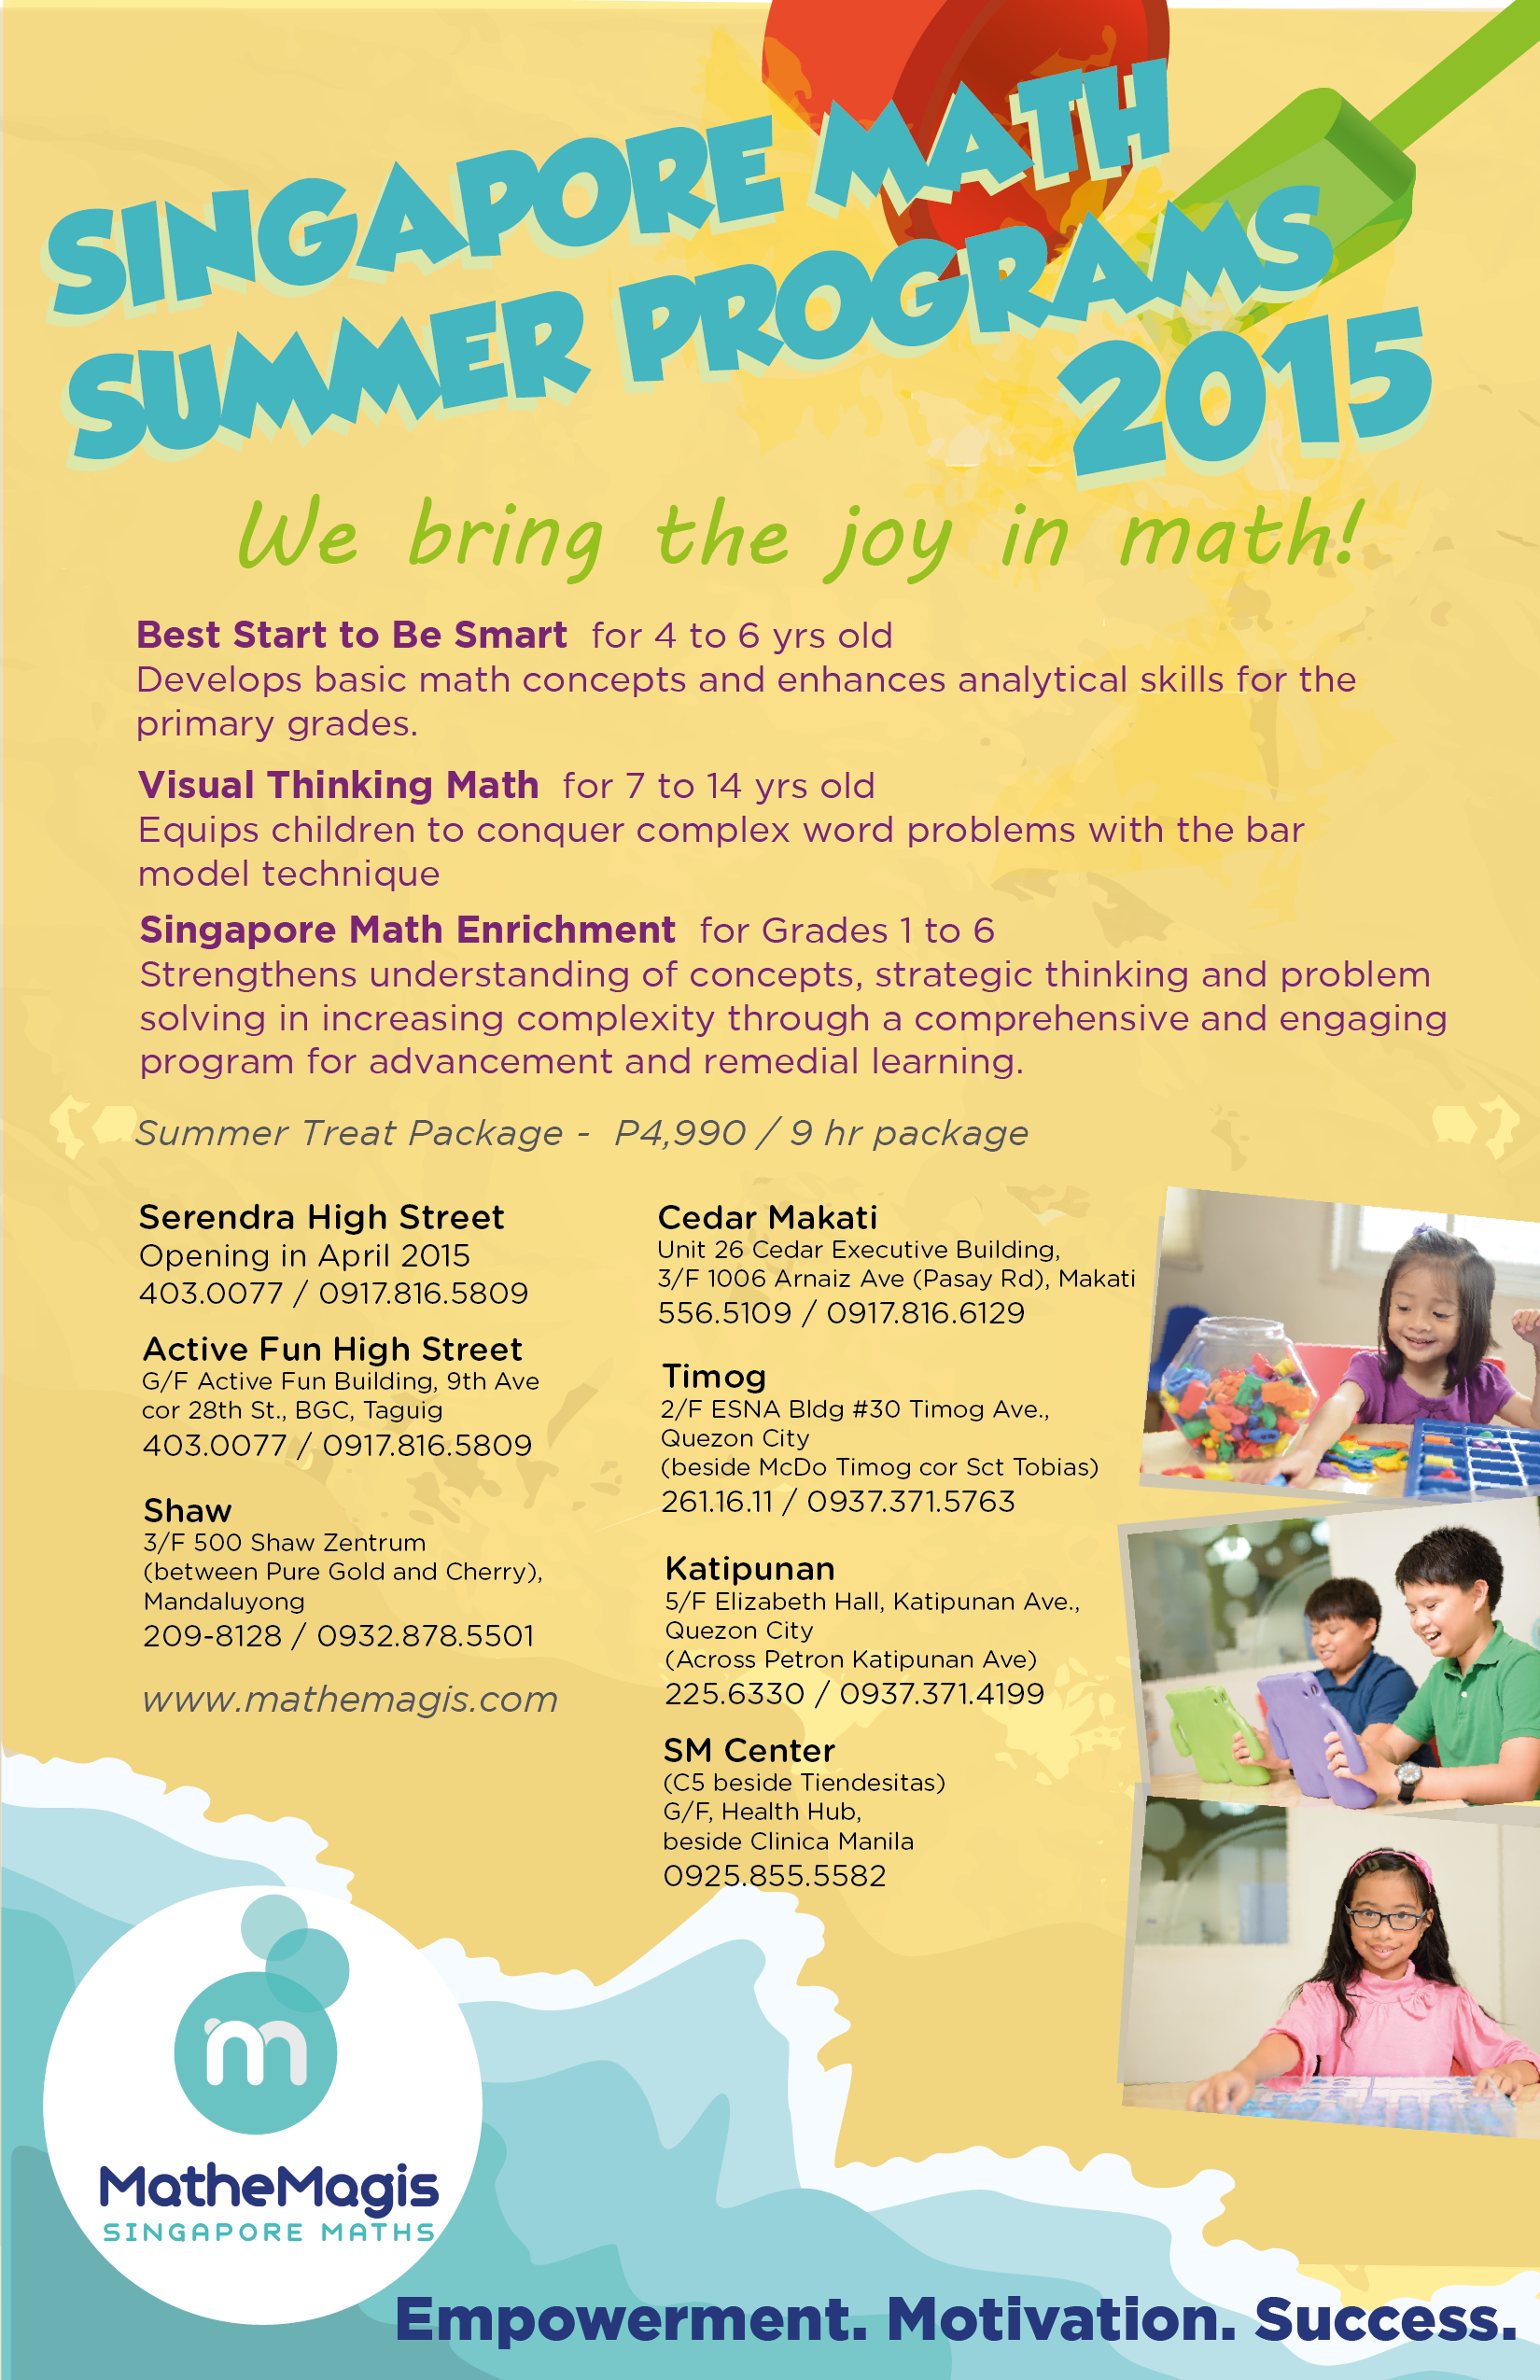 SUMMER 2015 PROGRAM FOR SINGAPOREAN MATH